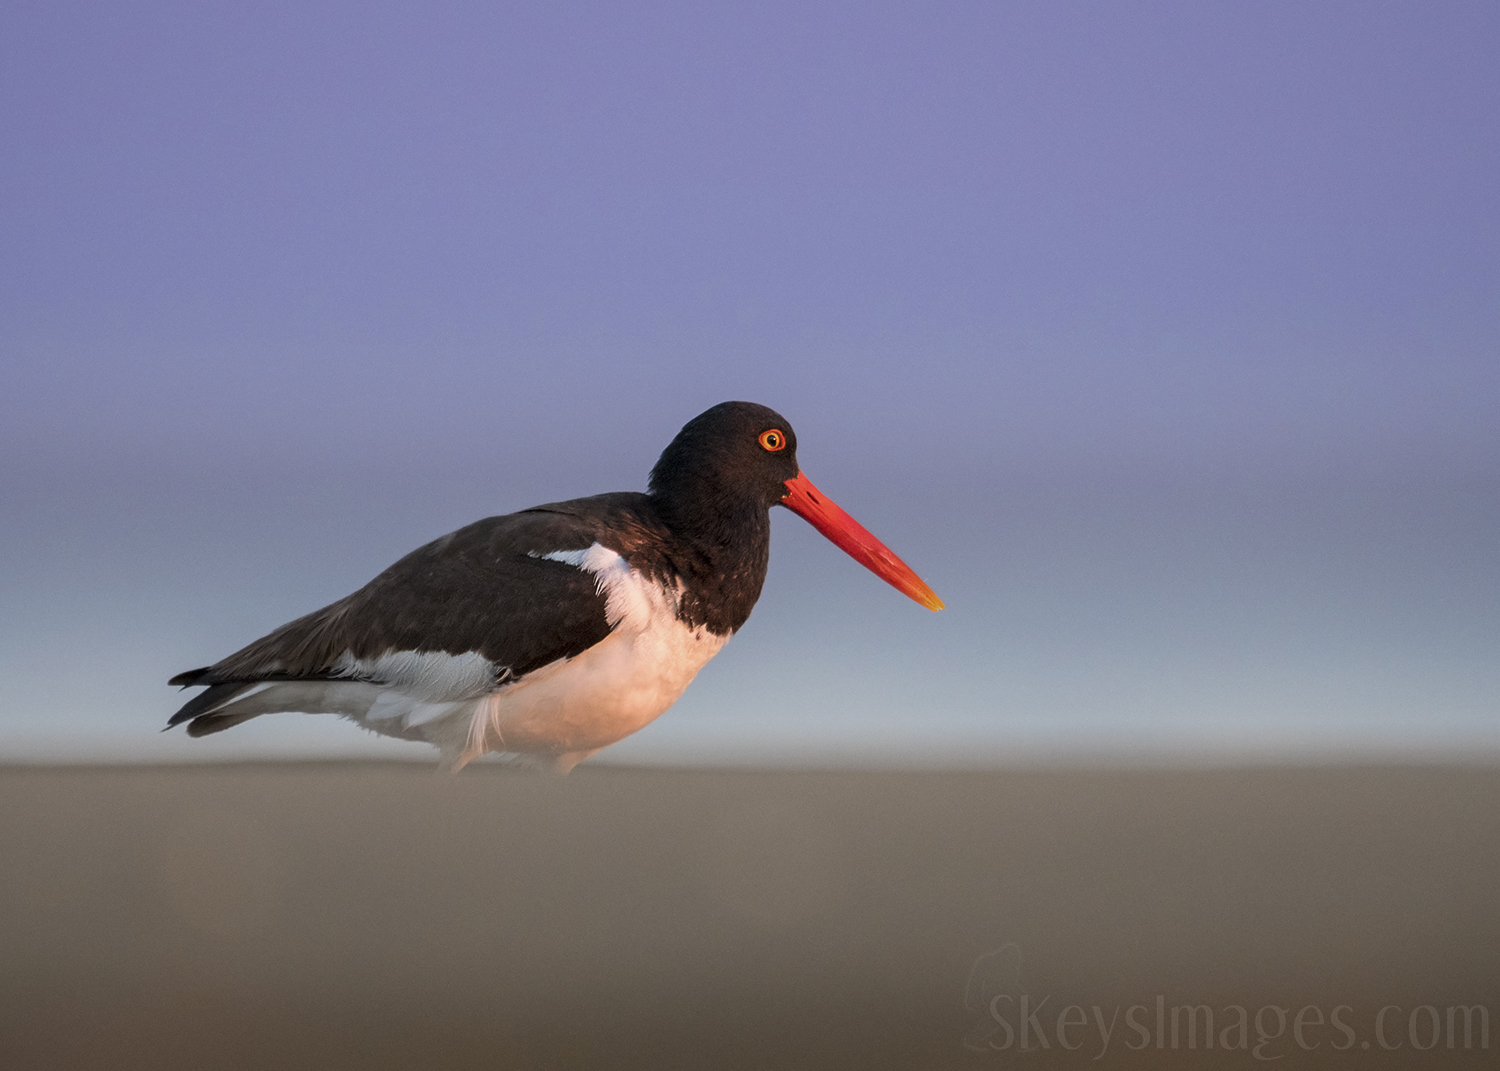 This example shows a foreground blur that composes the bottom third of the image. The key element for me here was the sky. The sun was just coming up and the sky still had blue and purple tones that I wanted to include. The Oystercatcher was actually a little above me on a small dune, so I could get the sand, the bird and the sky all in one picture.